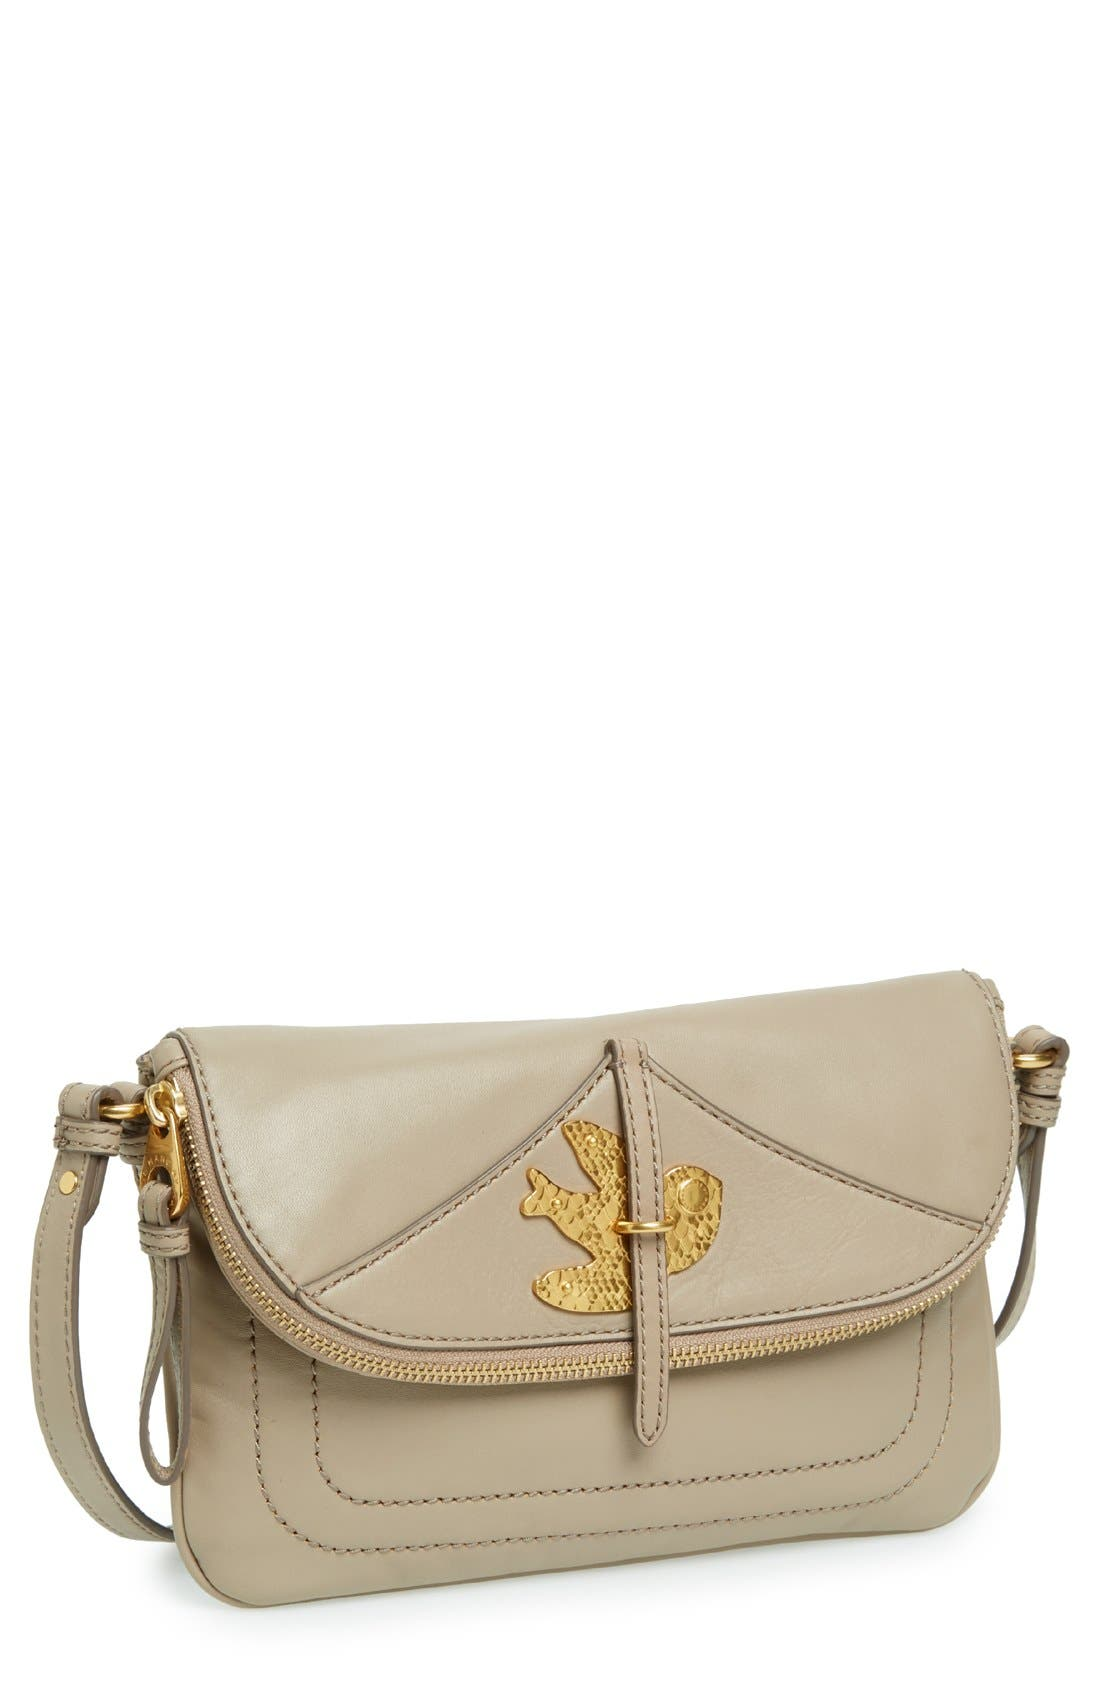 Main Image - MARC BY MARC JACOBS 'Petal to the Metal - Percy' Crossbody Bag